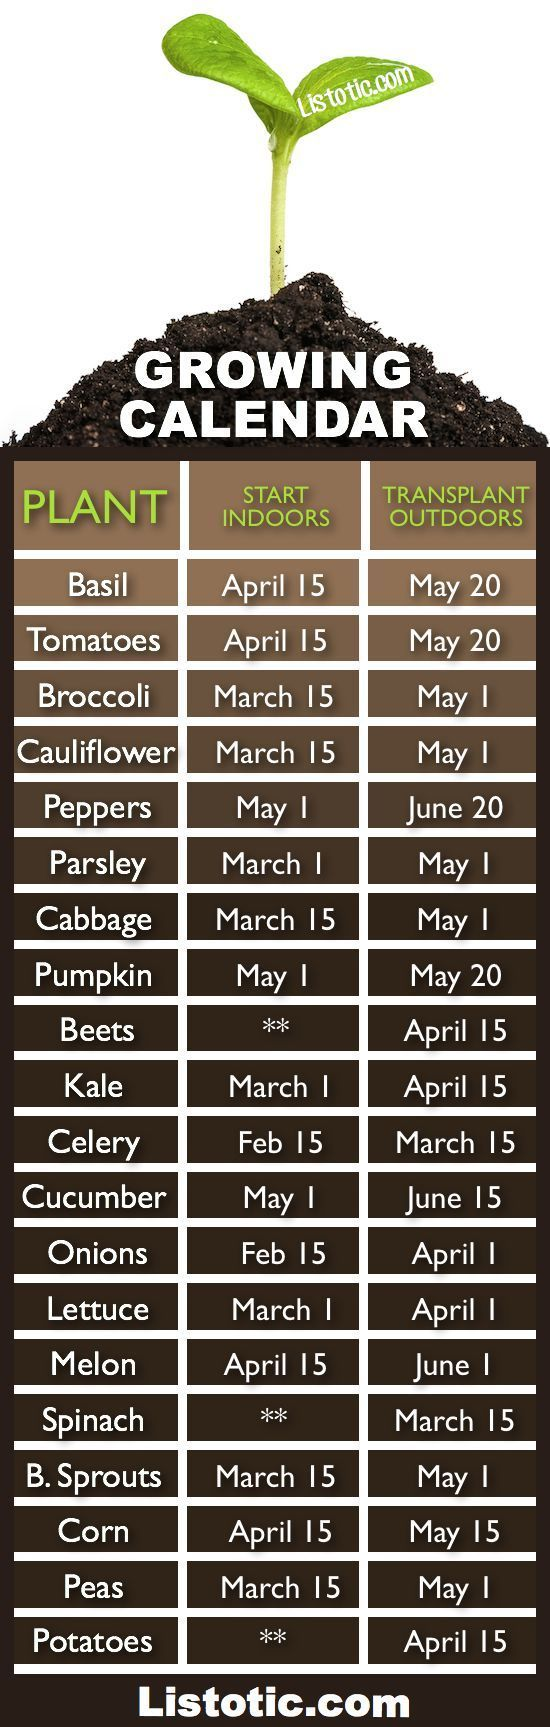 Vegetable garden growing calendar with starting and transplanting dates. If only I had a green thumb, I'll stick to my silk flowers at www.southerncharmwreaths.com/blog